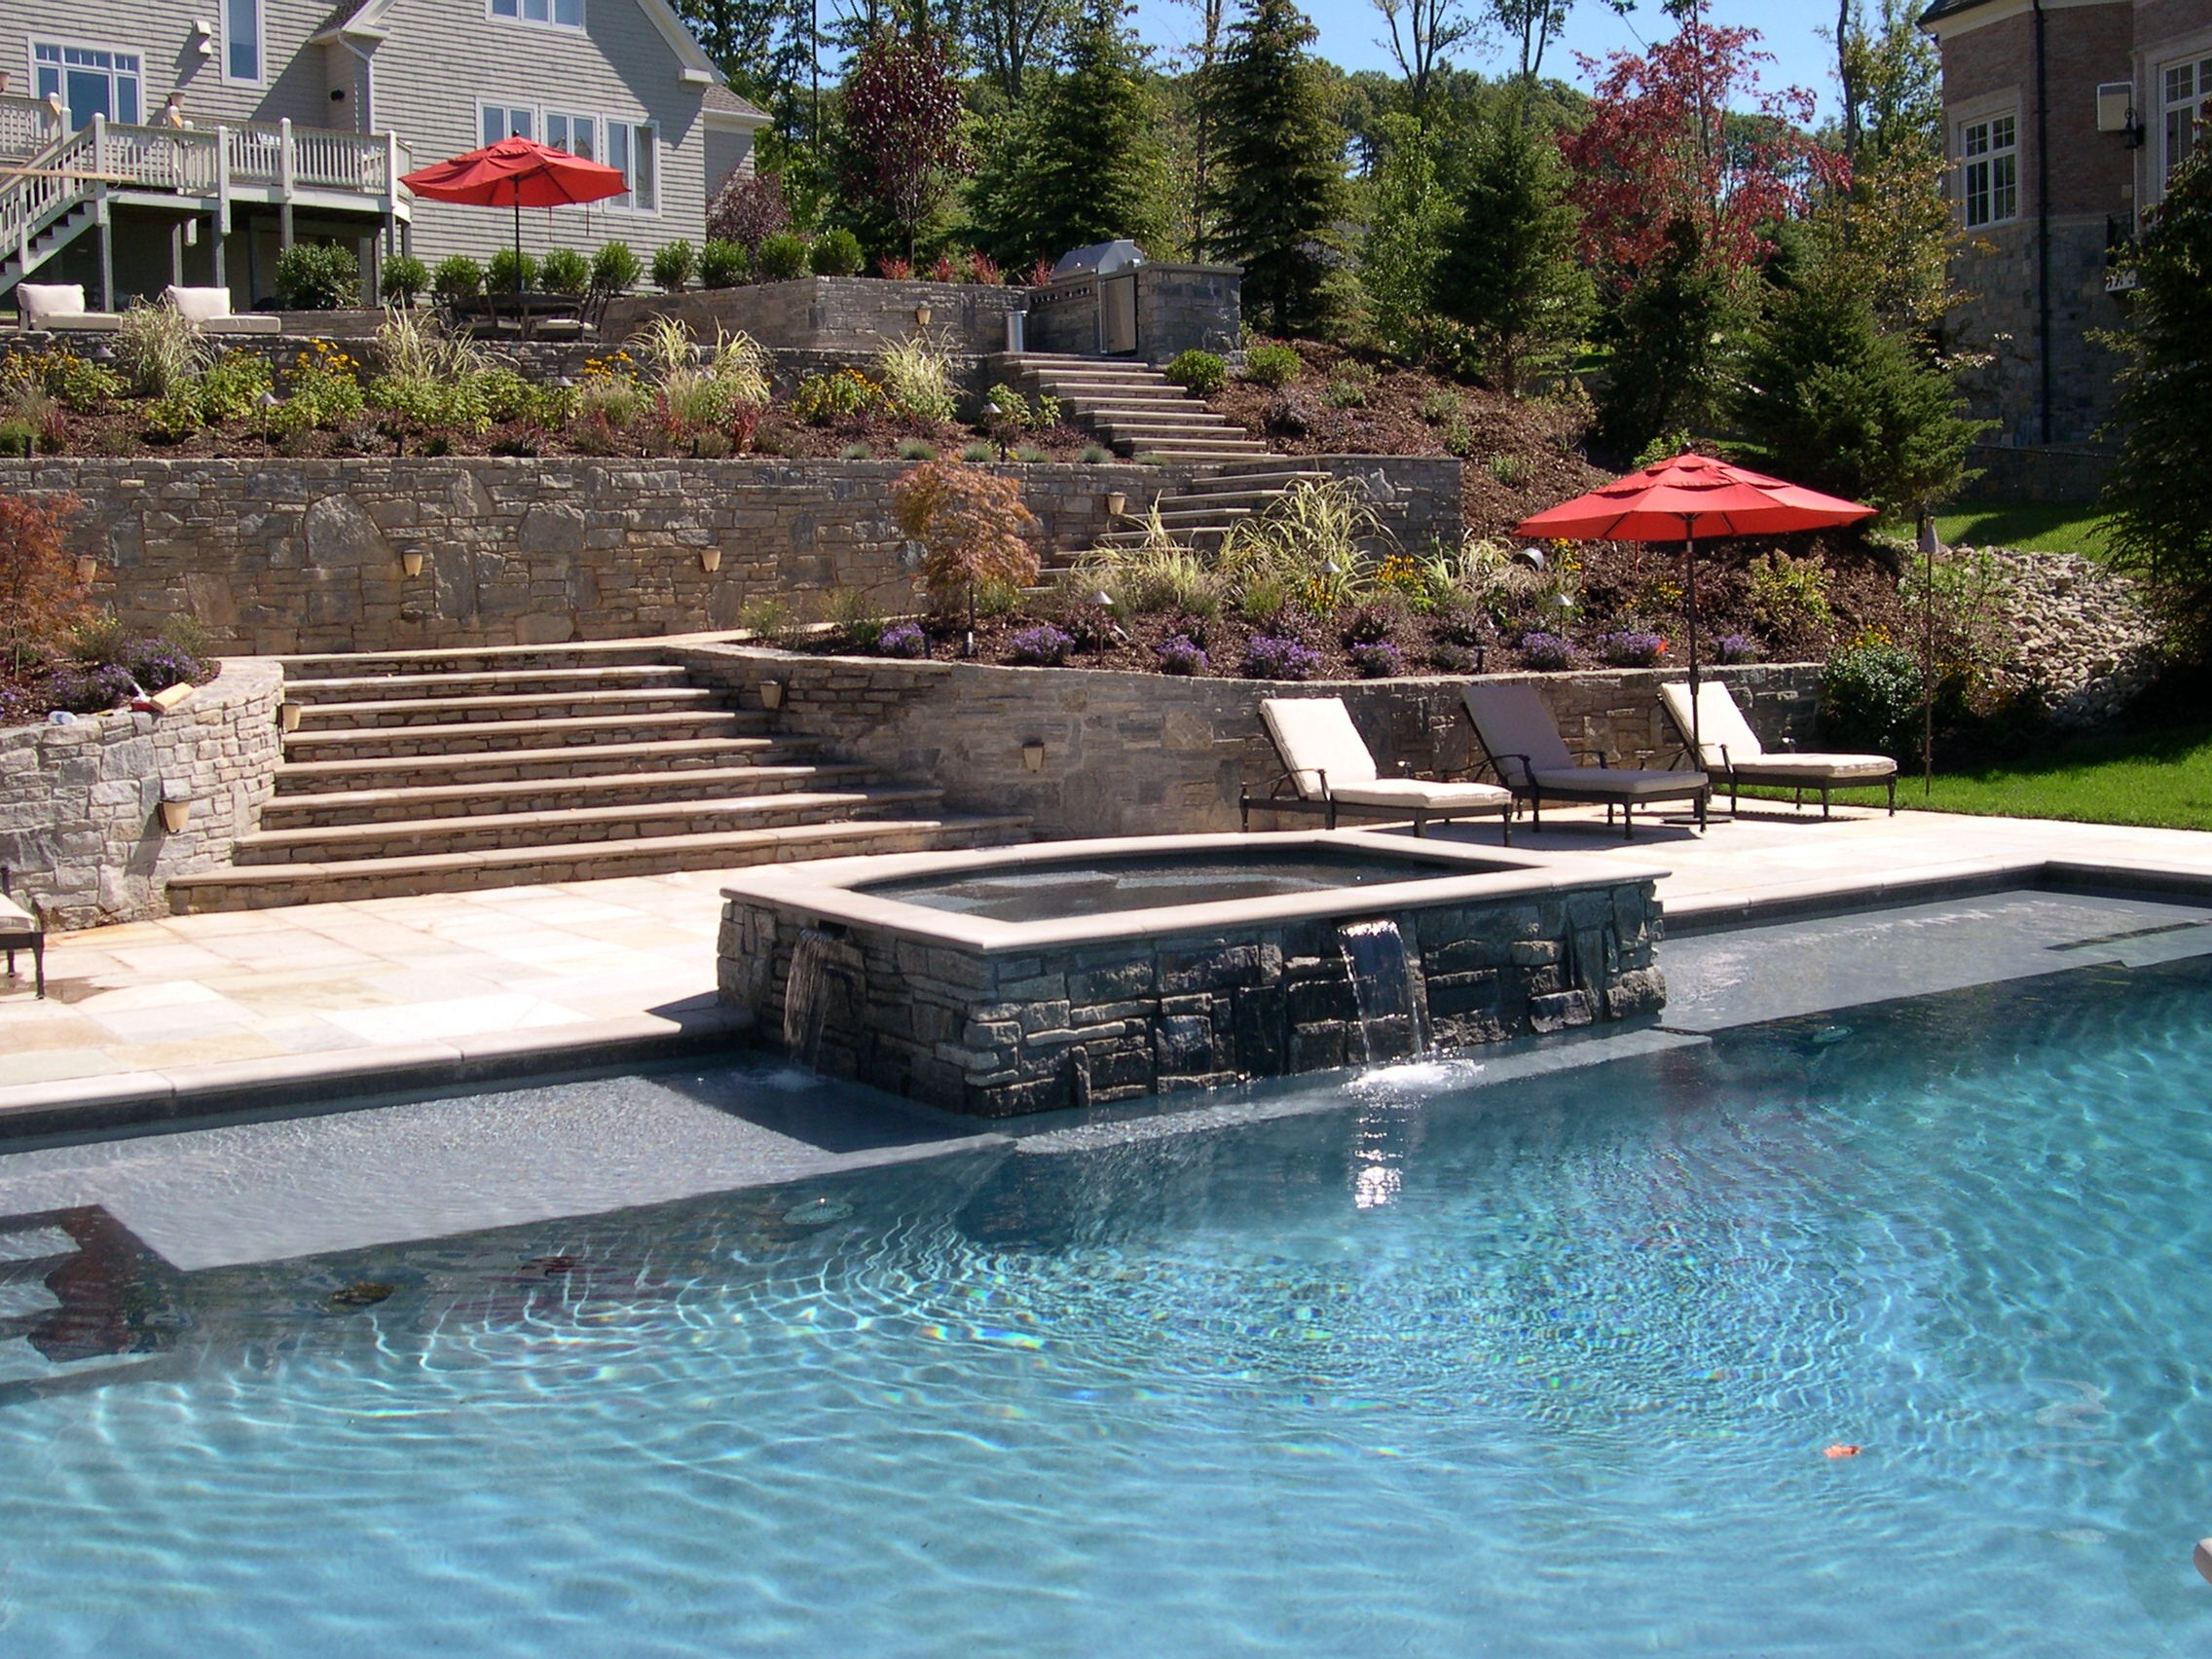 Custom Swimming Pool Hartford County - Connecticut Pool and Spa - Copy